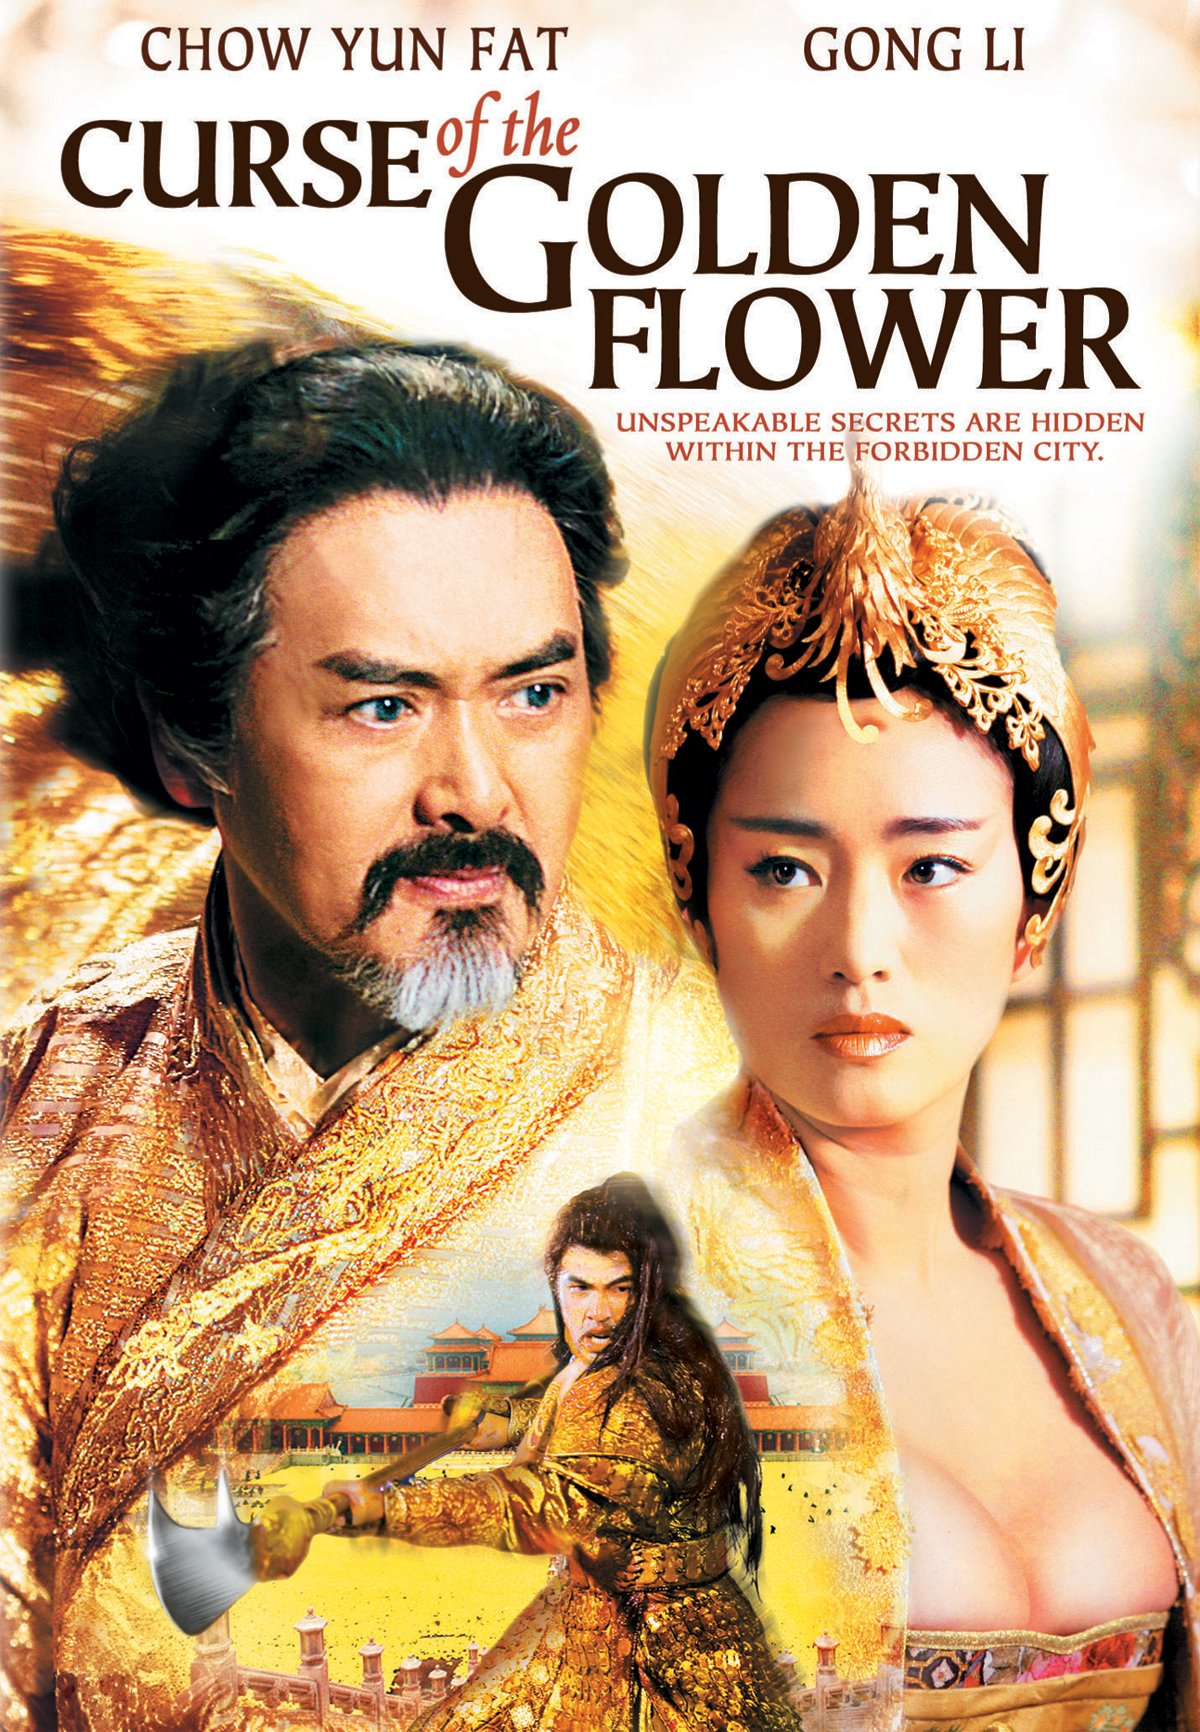 Amazon curse of the golden flower chow yun fat jay chou li amazon curse of the golden flower chow yun fat jay chou li gong yimou zhang amazon digital services llc mightylinksfo